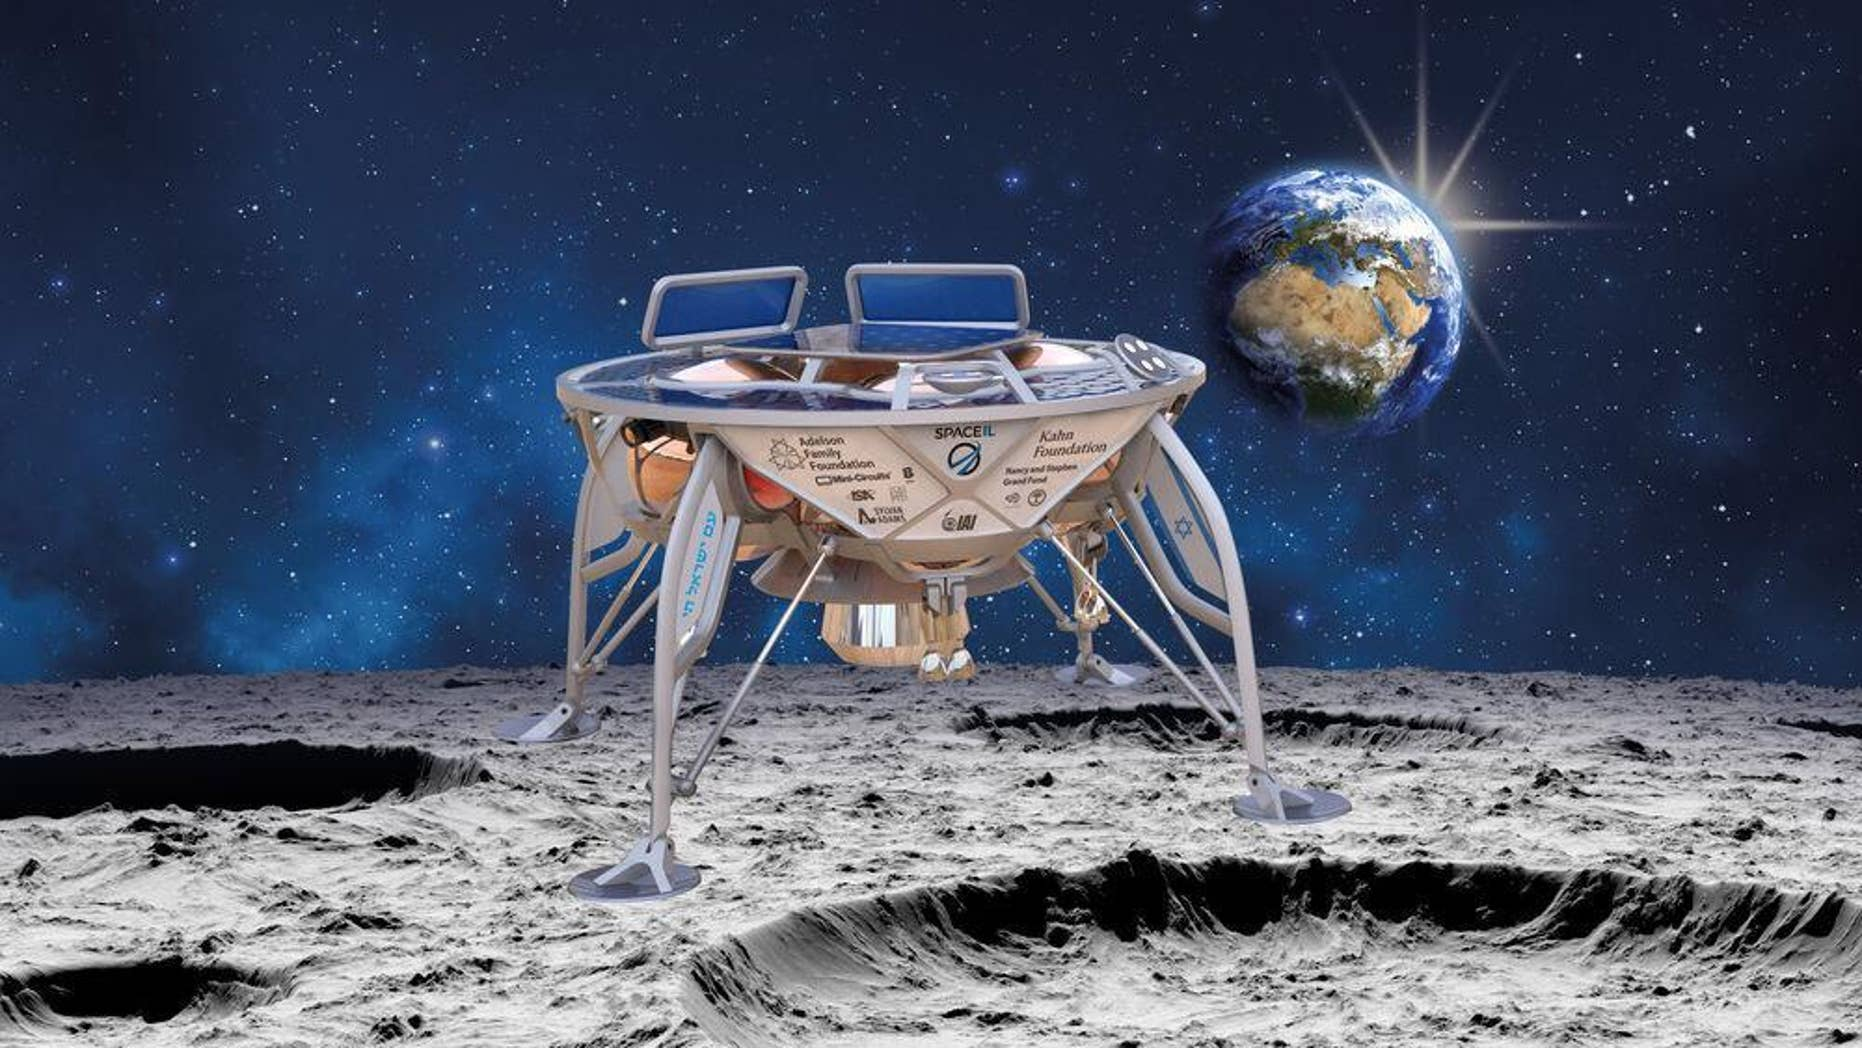 An artist's impression of the beresheet probe on the lunar surface.